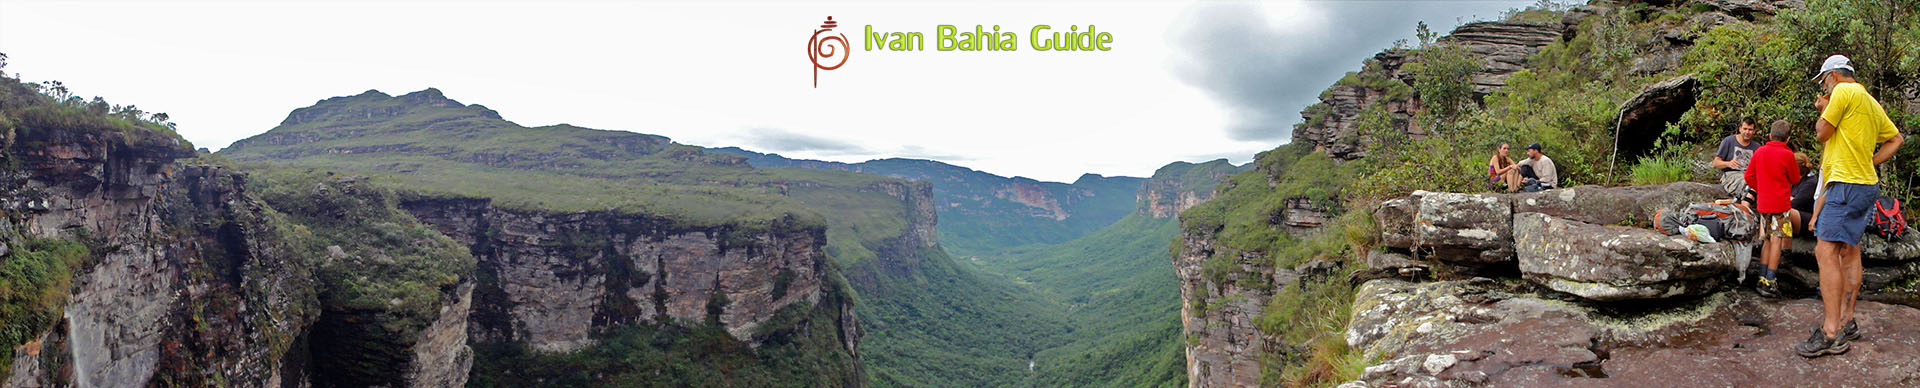 Ivan Bahia tour-guide / hiking in Chapada Diamantina National Park (aka 'the Brazilian Grand Canyon') mountain views hashtag : #ChapadaDiamantinaGuide #ChapadaDiamantina #ChapadaDiamantinaTrekking #BahiaMetisse #ToursByLocals #fernandobingretourguide #IBG #FotosBahia #DiamantinaMountains #IvanBahiaReizen #IvanChapadaDiamantinaGuide #ValeDoPati #PatiValey #ValeDoCapao #Trajano #Zentur #chapadatrekking #TrilhasDiamantina #morodopaiinacio #lencois #poçoazul #ecoturismo